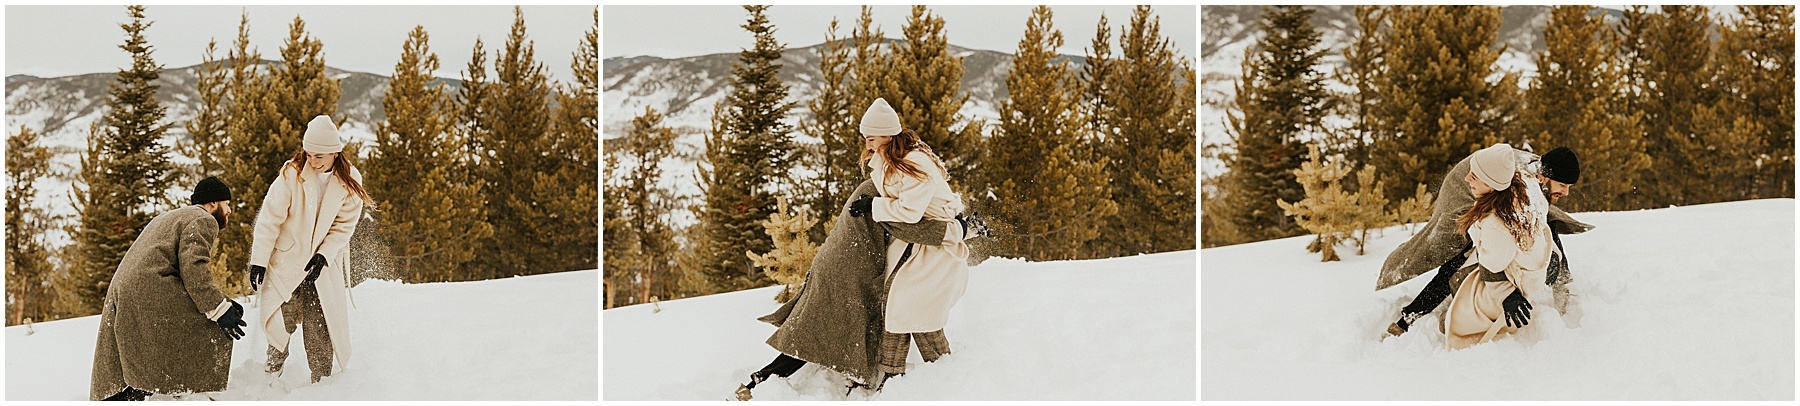 Proposal and engagement session in Breckenridge, Colorado Saphire Point_0414.jpg